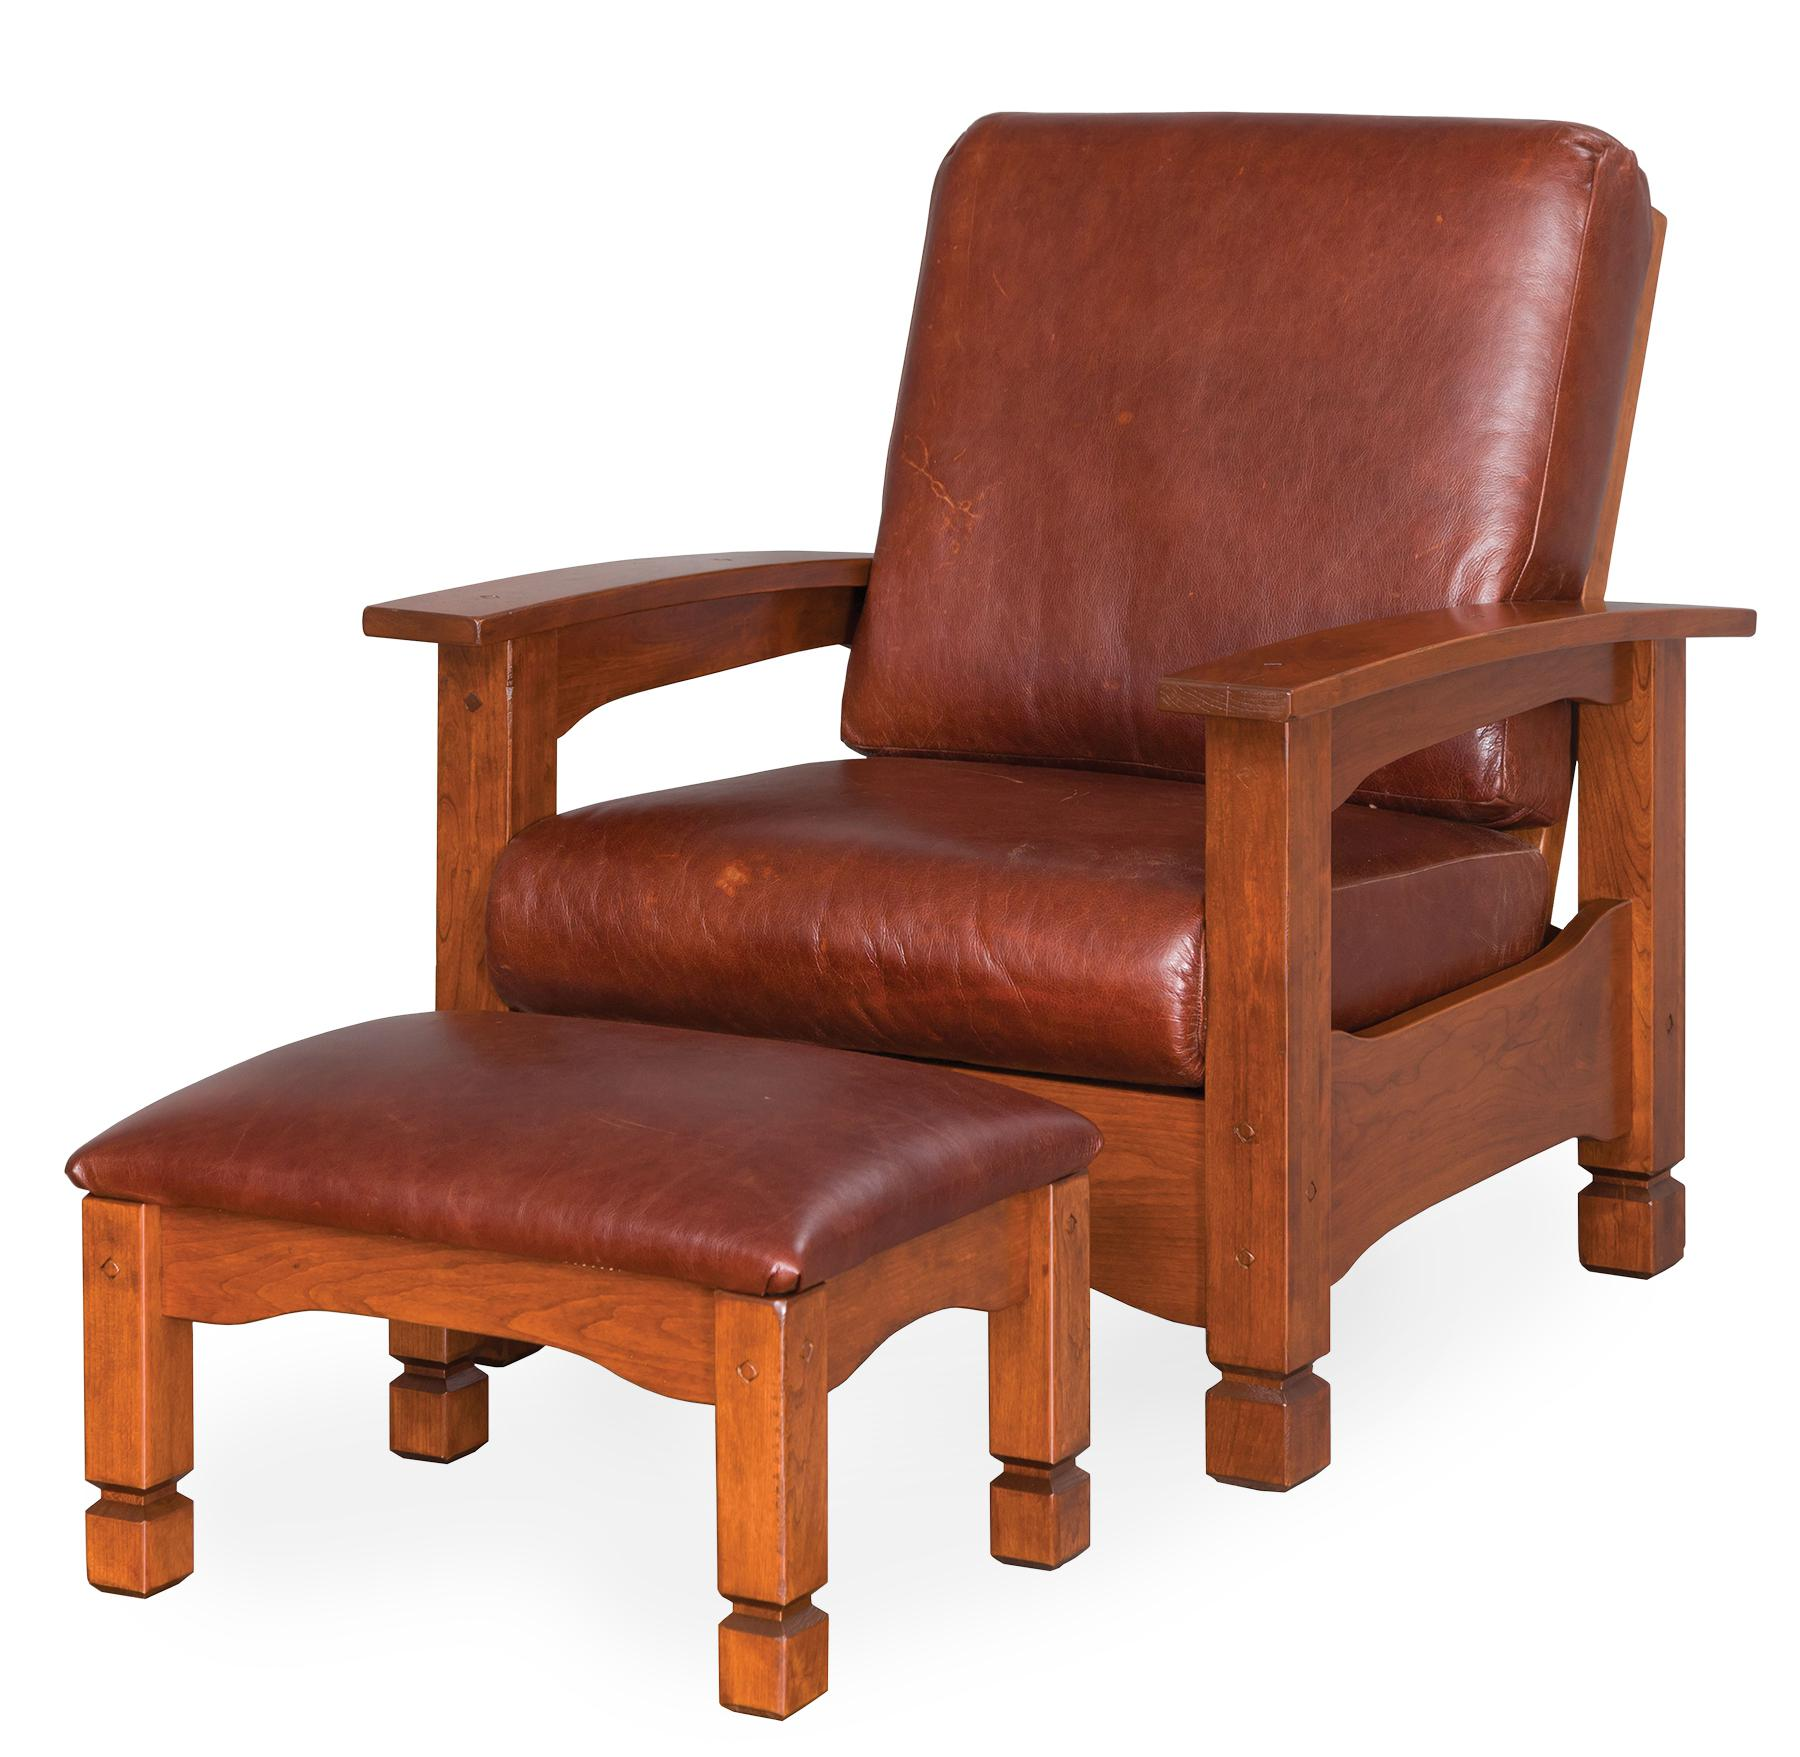 Rustic Country Morris Chair and Ottoman